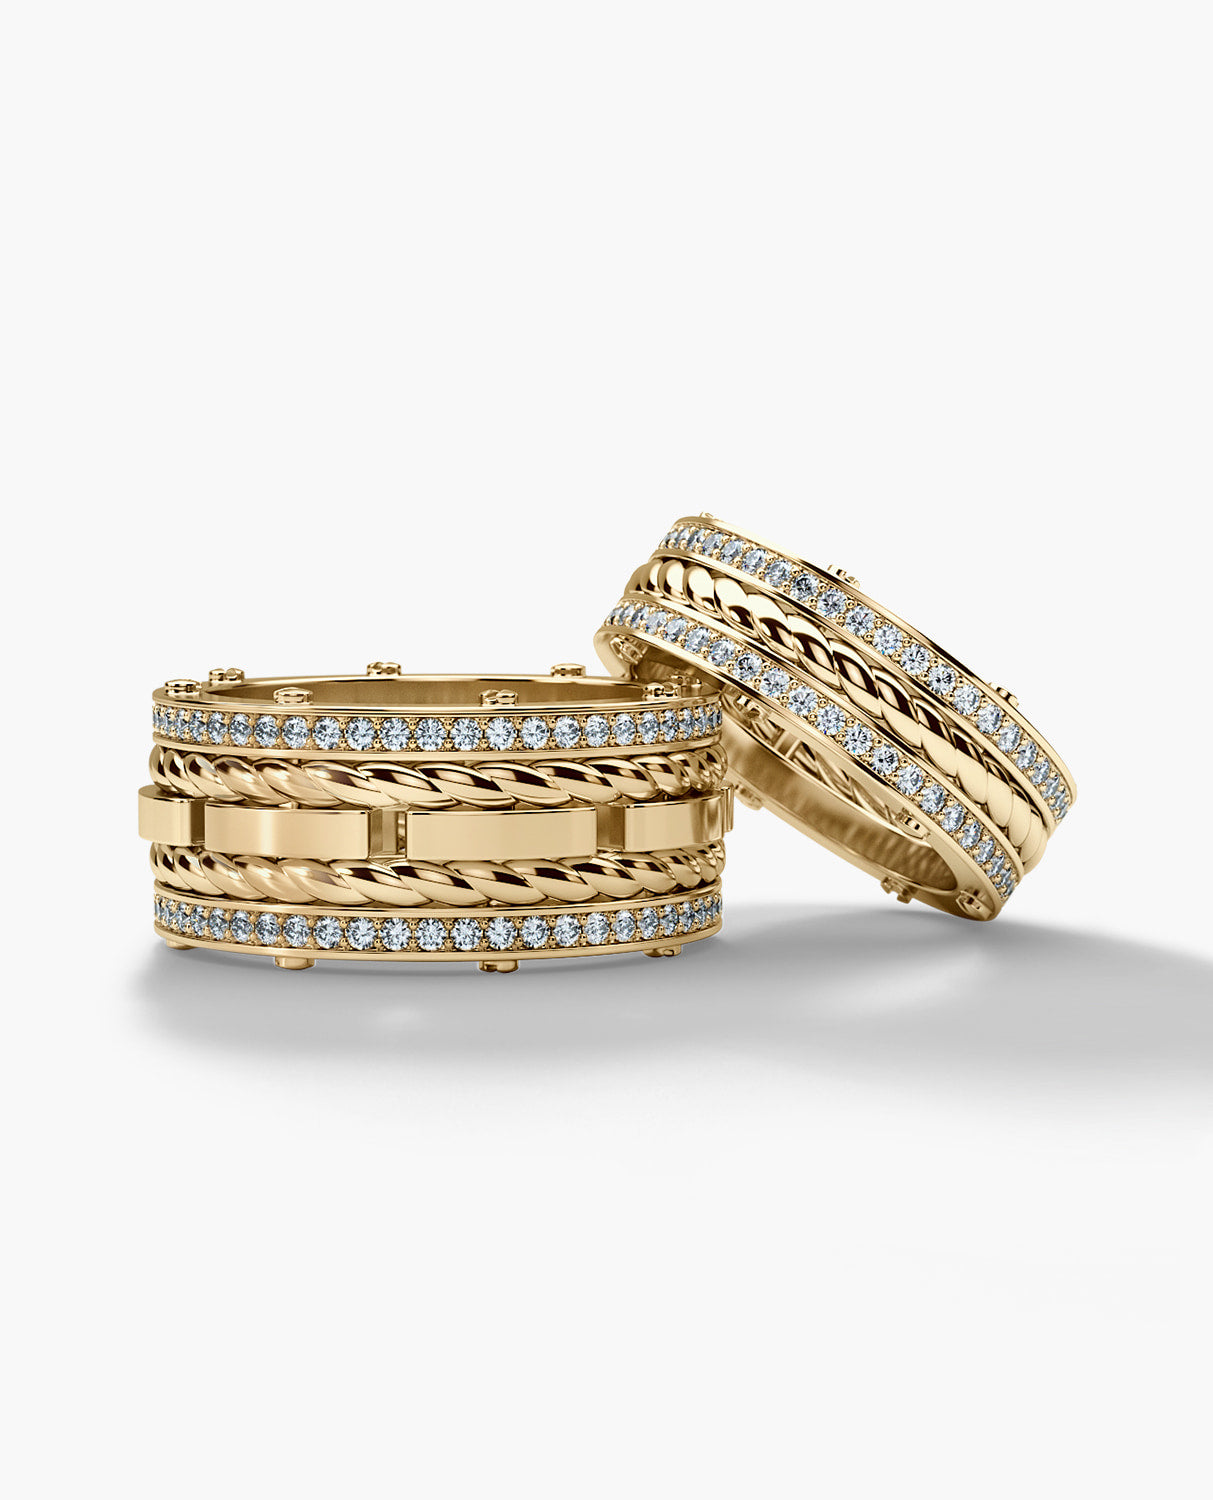 ROPES Gold Matching Diamond Wedding Band Set